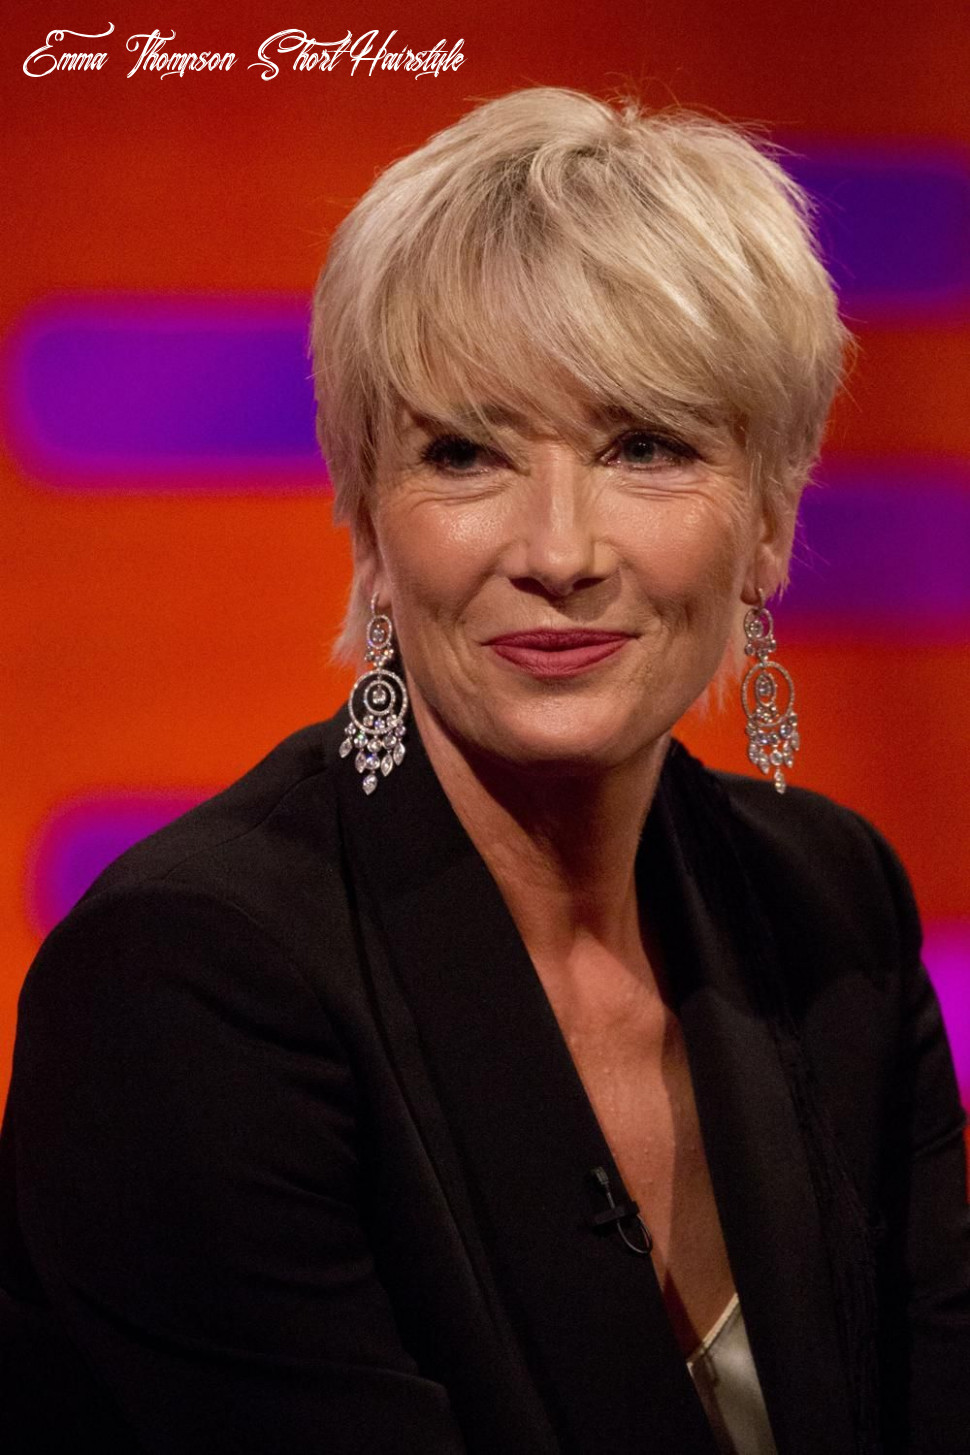 Pin on hair emma thompson short hairstyle